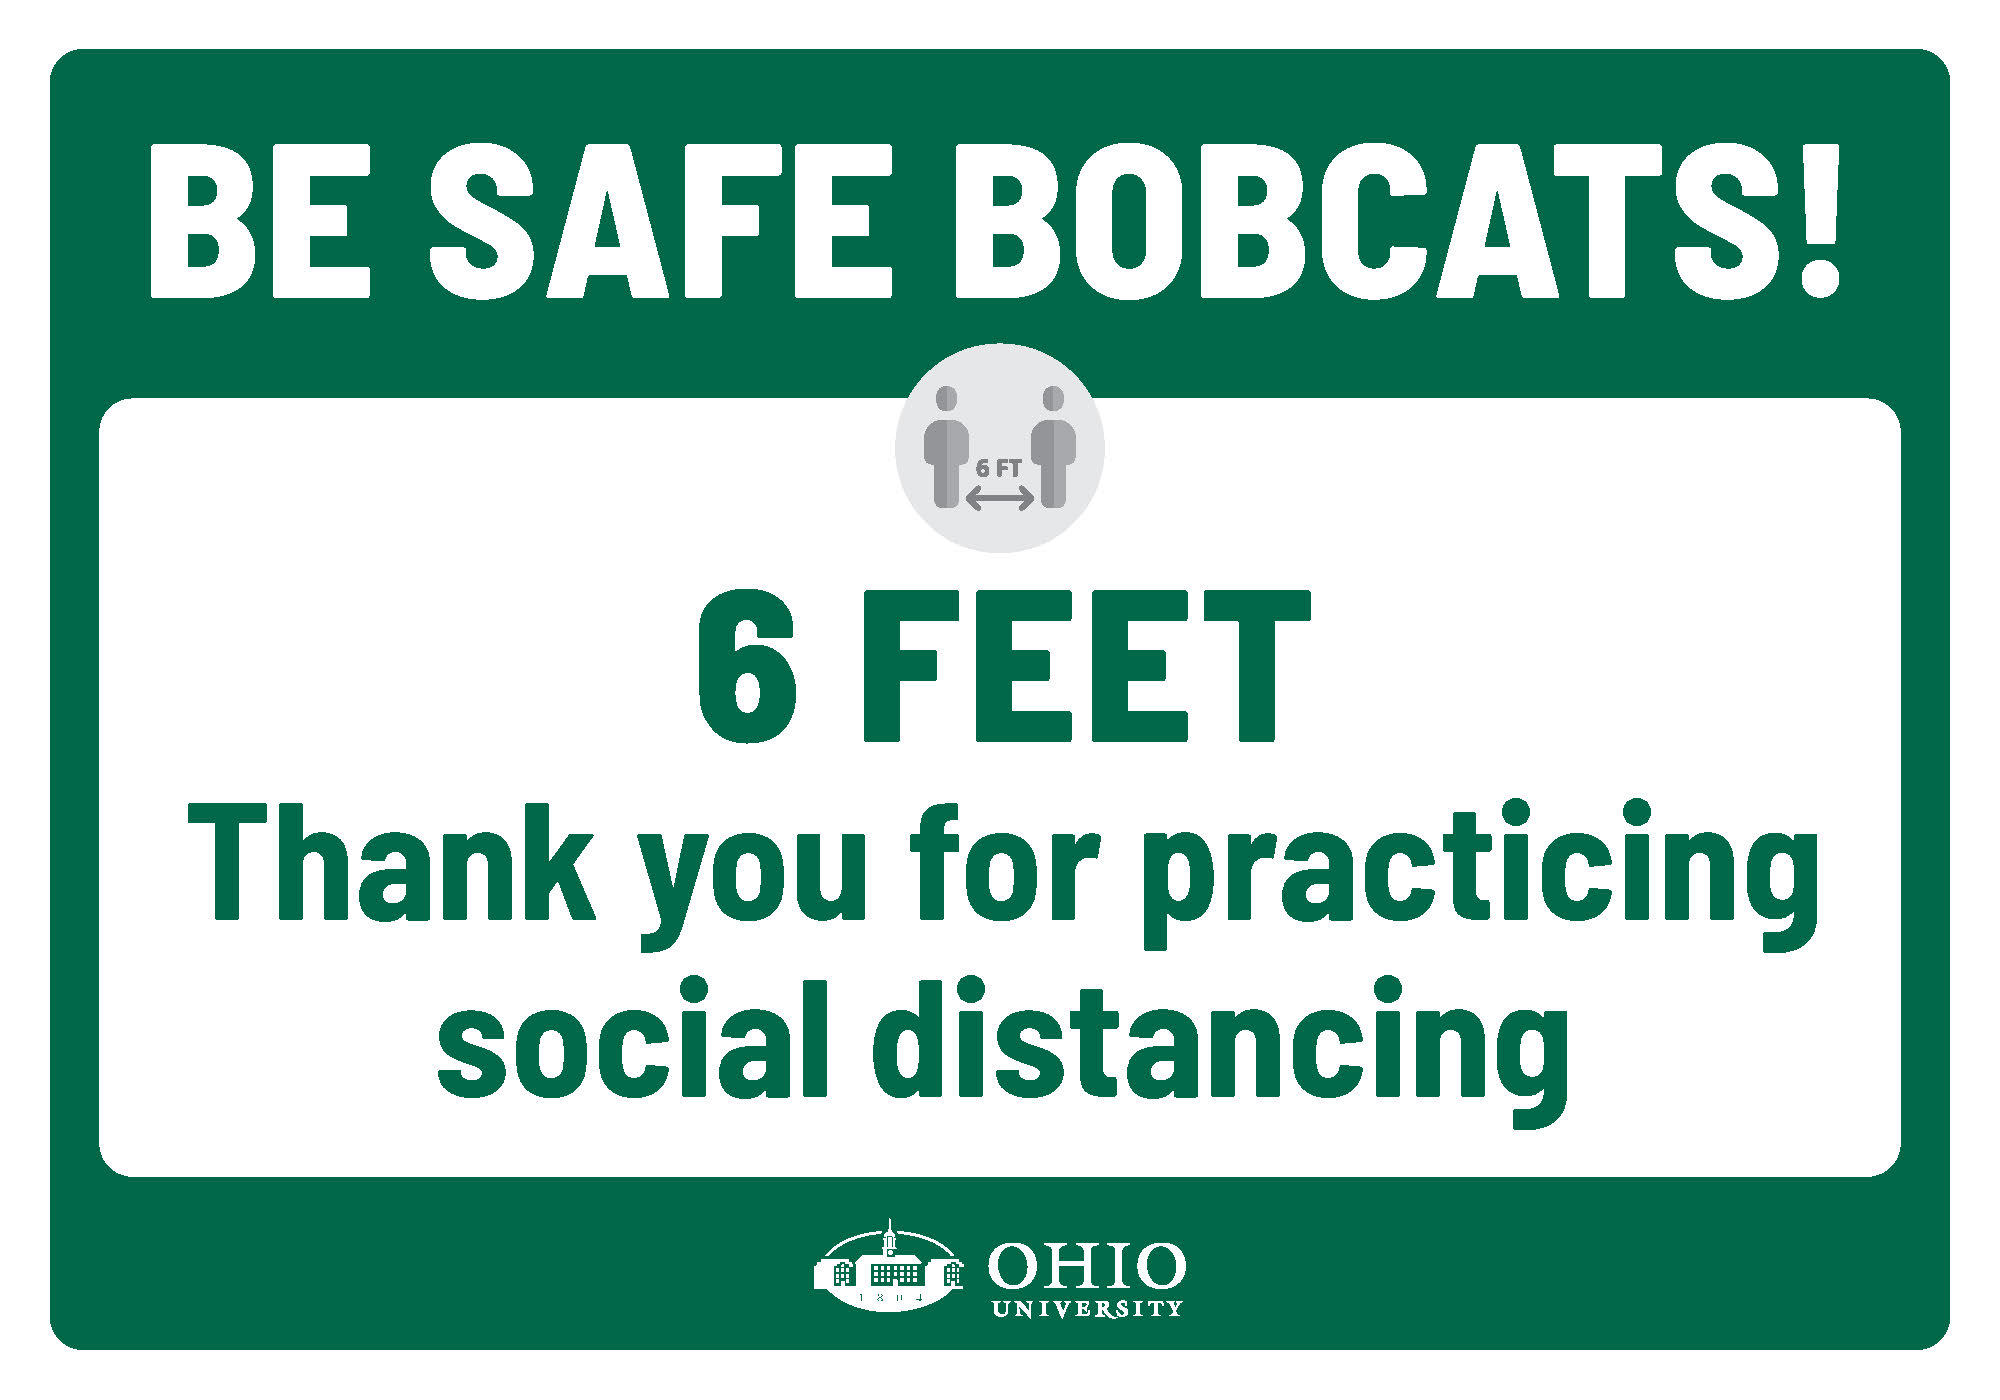 Sign that says: Be safe Bobcats! 6 feet. Thank you for practicing social distancing.